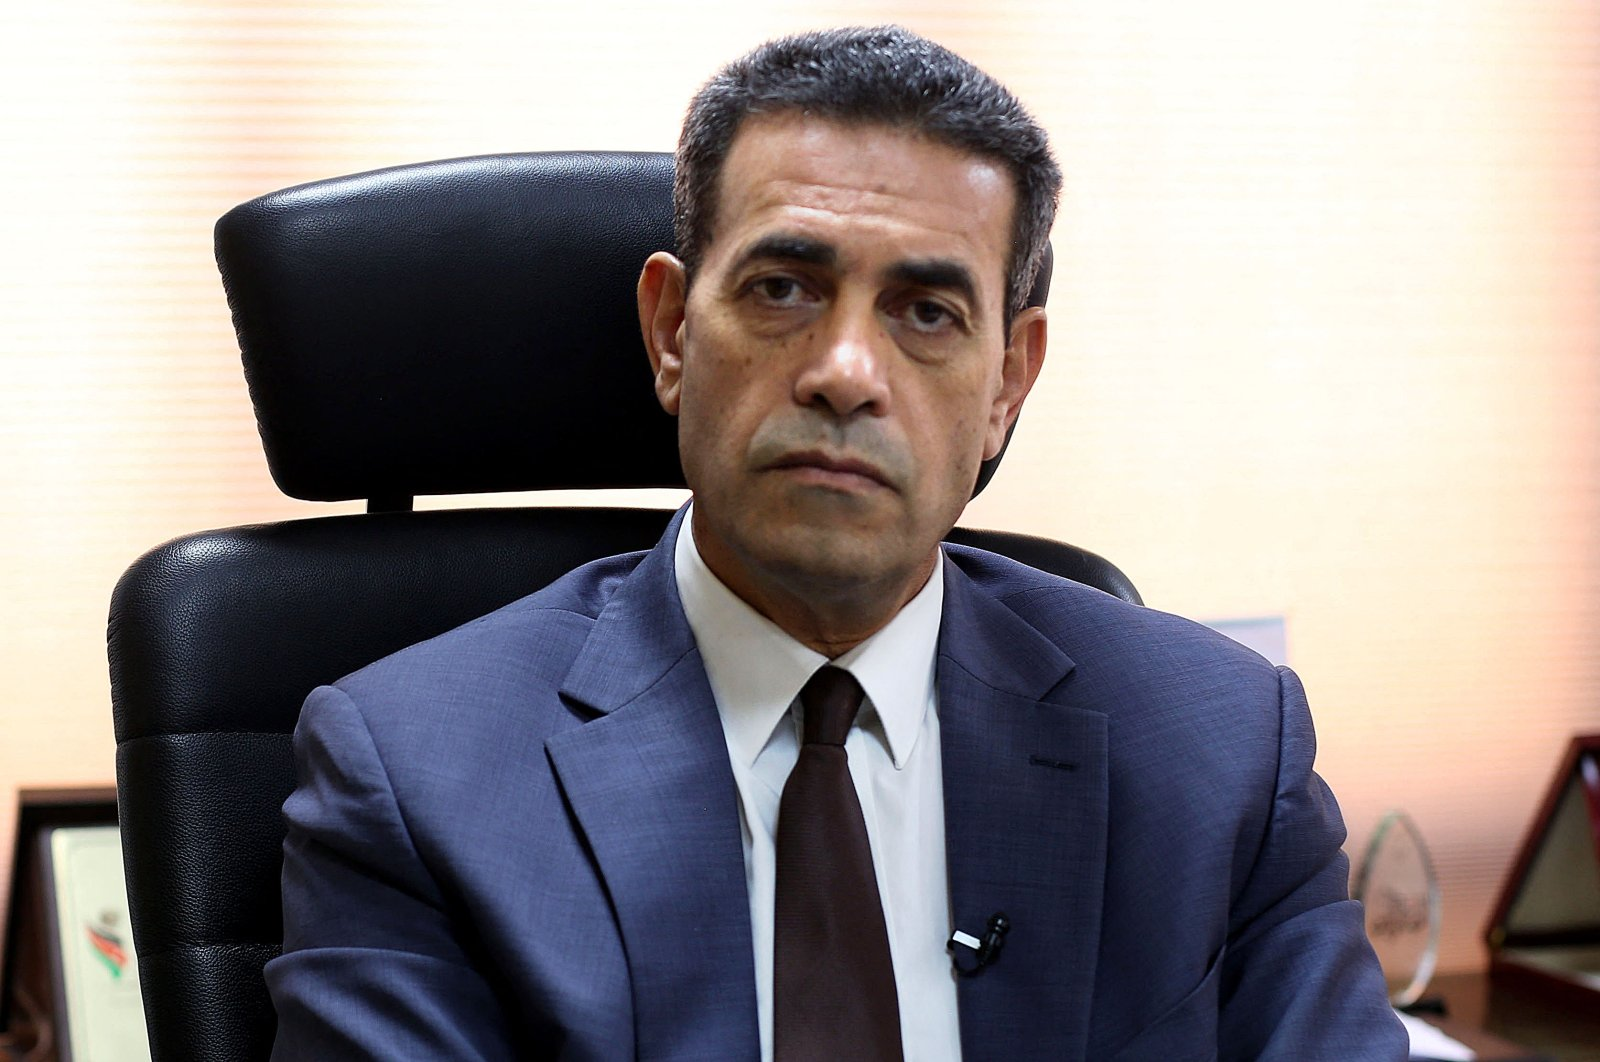 Imad al-Sayeh, head of Libya's High National Election Commission (HNEC), pauses during an interview with AFP in Tripoli, Libya, on Oct. 5, 2021. (AFP Photo)